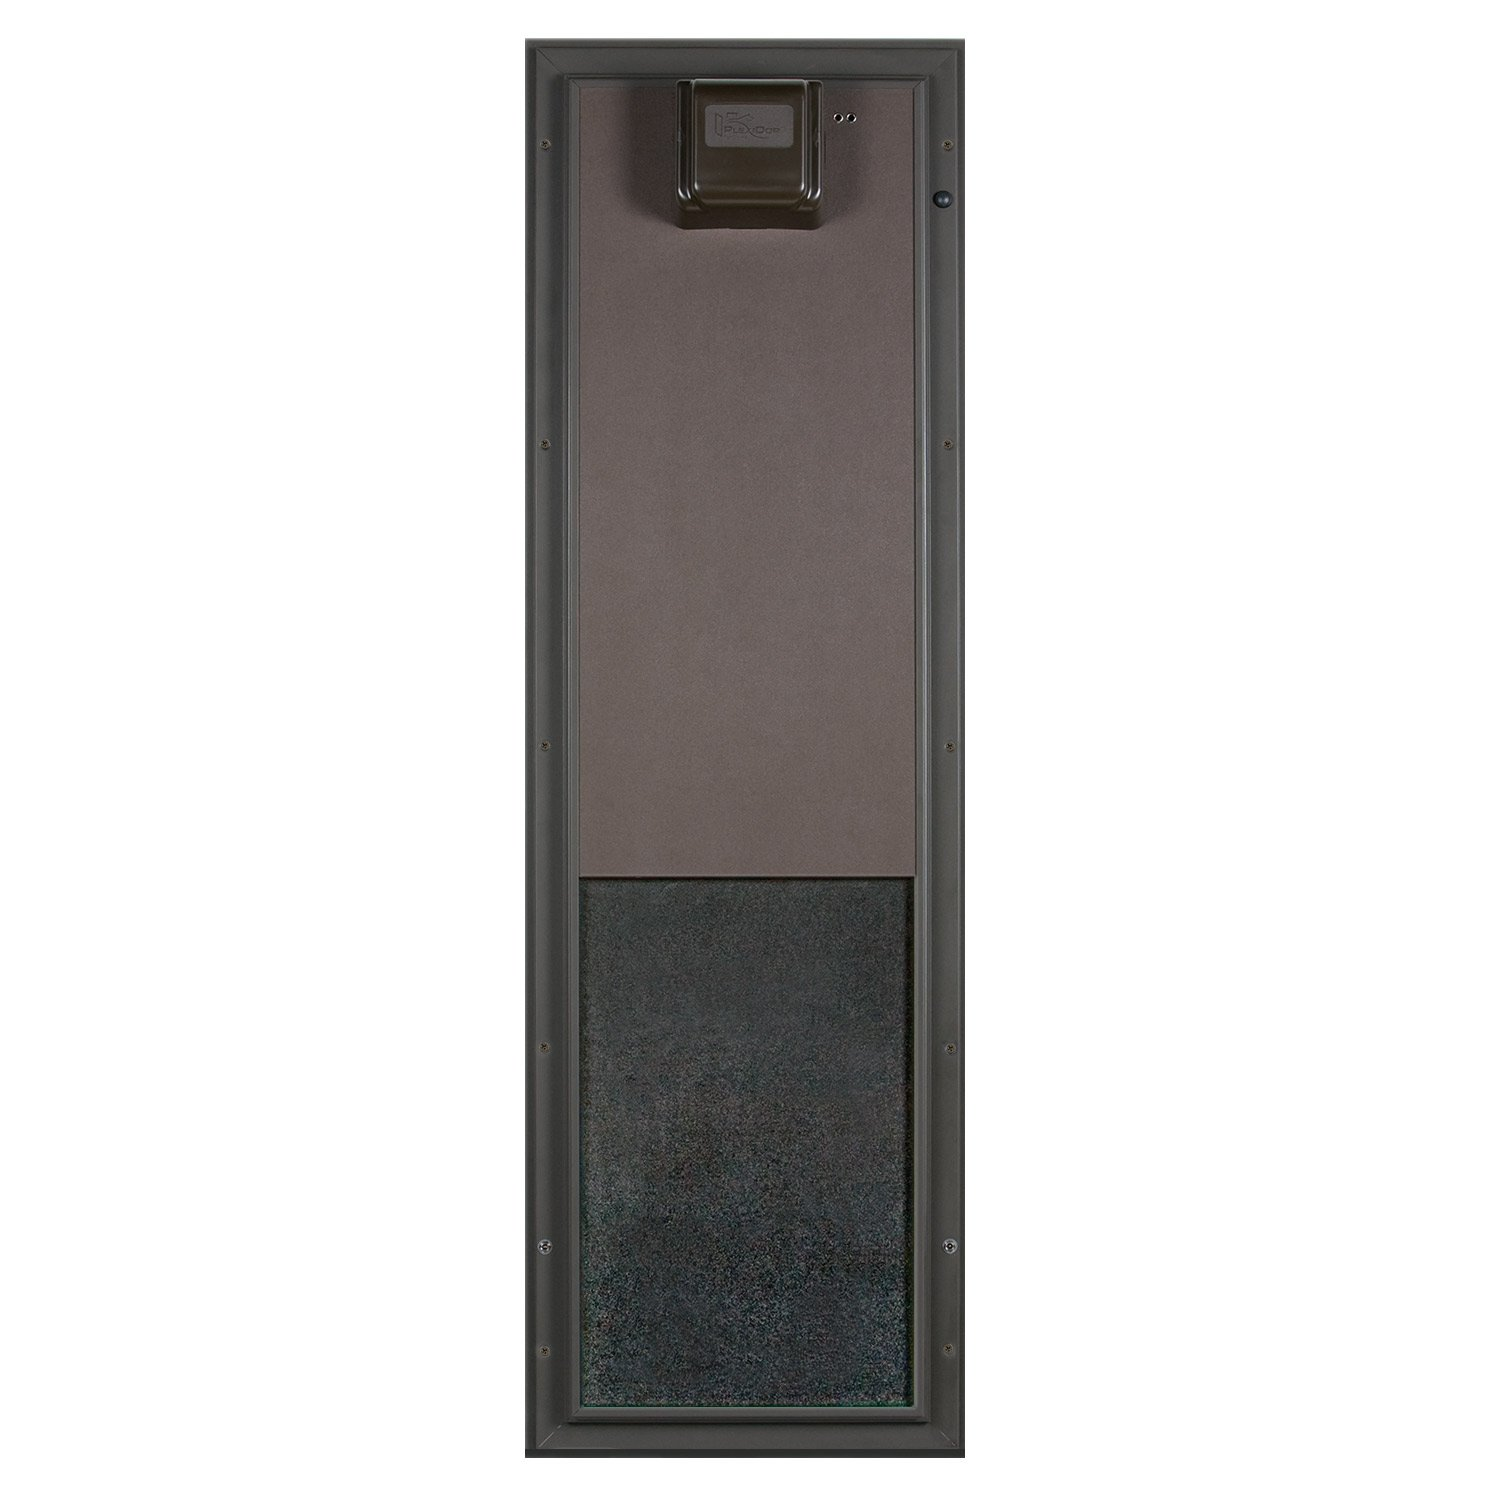 Plexidor Large Wall Mount PDE Electronic Pet Door in Bronze